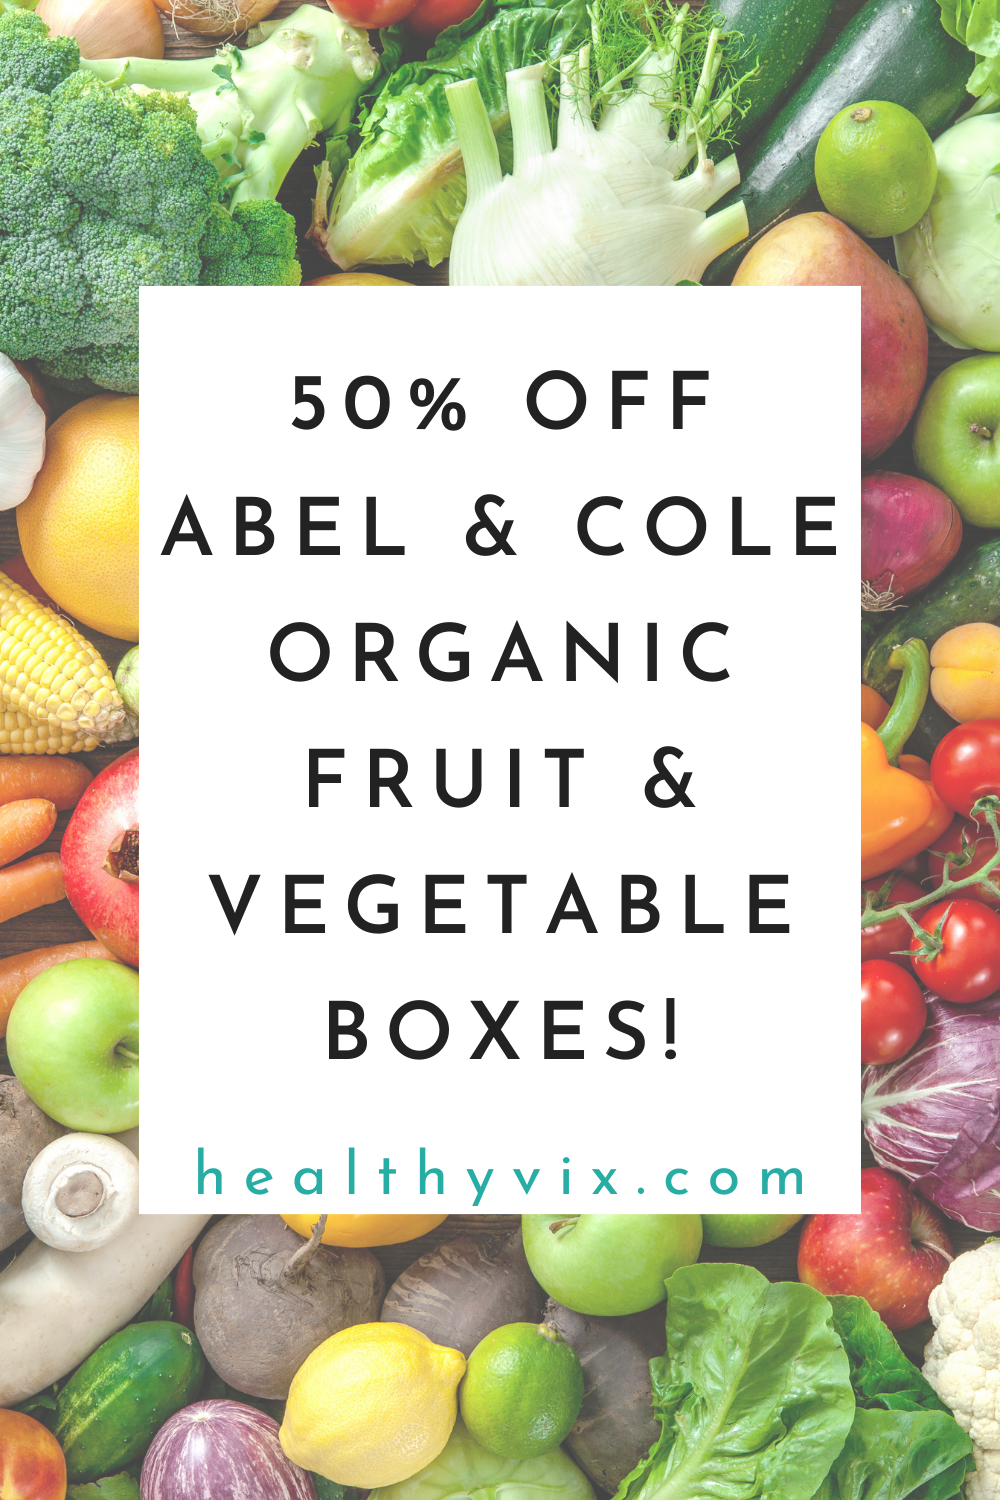 Abel and Cole Organic Discount Code 2021